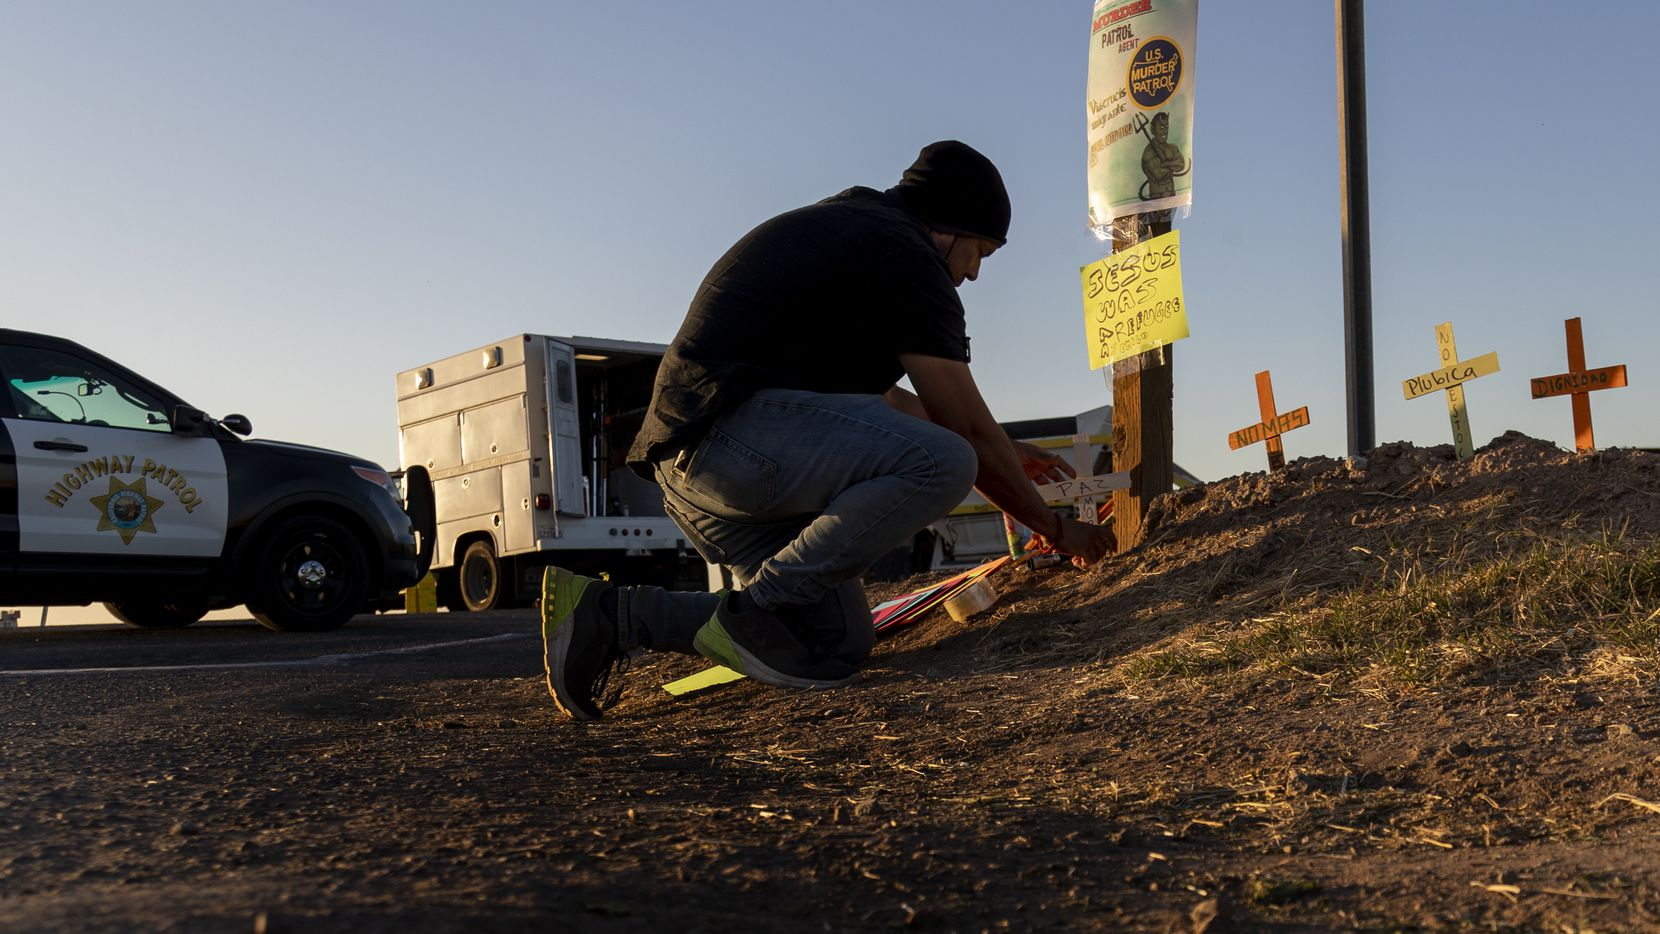 Hugo Chavez, an activist with the Coalition for Human Immigration Rights, placed crosses at the scene where an SUV carrying 25 people collided with a semi-truck, killing 13, on Highway 115 near the Mexican border on March 2, 2021 in Holtville, Calif.